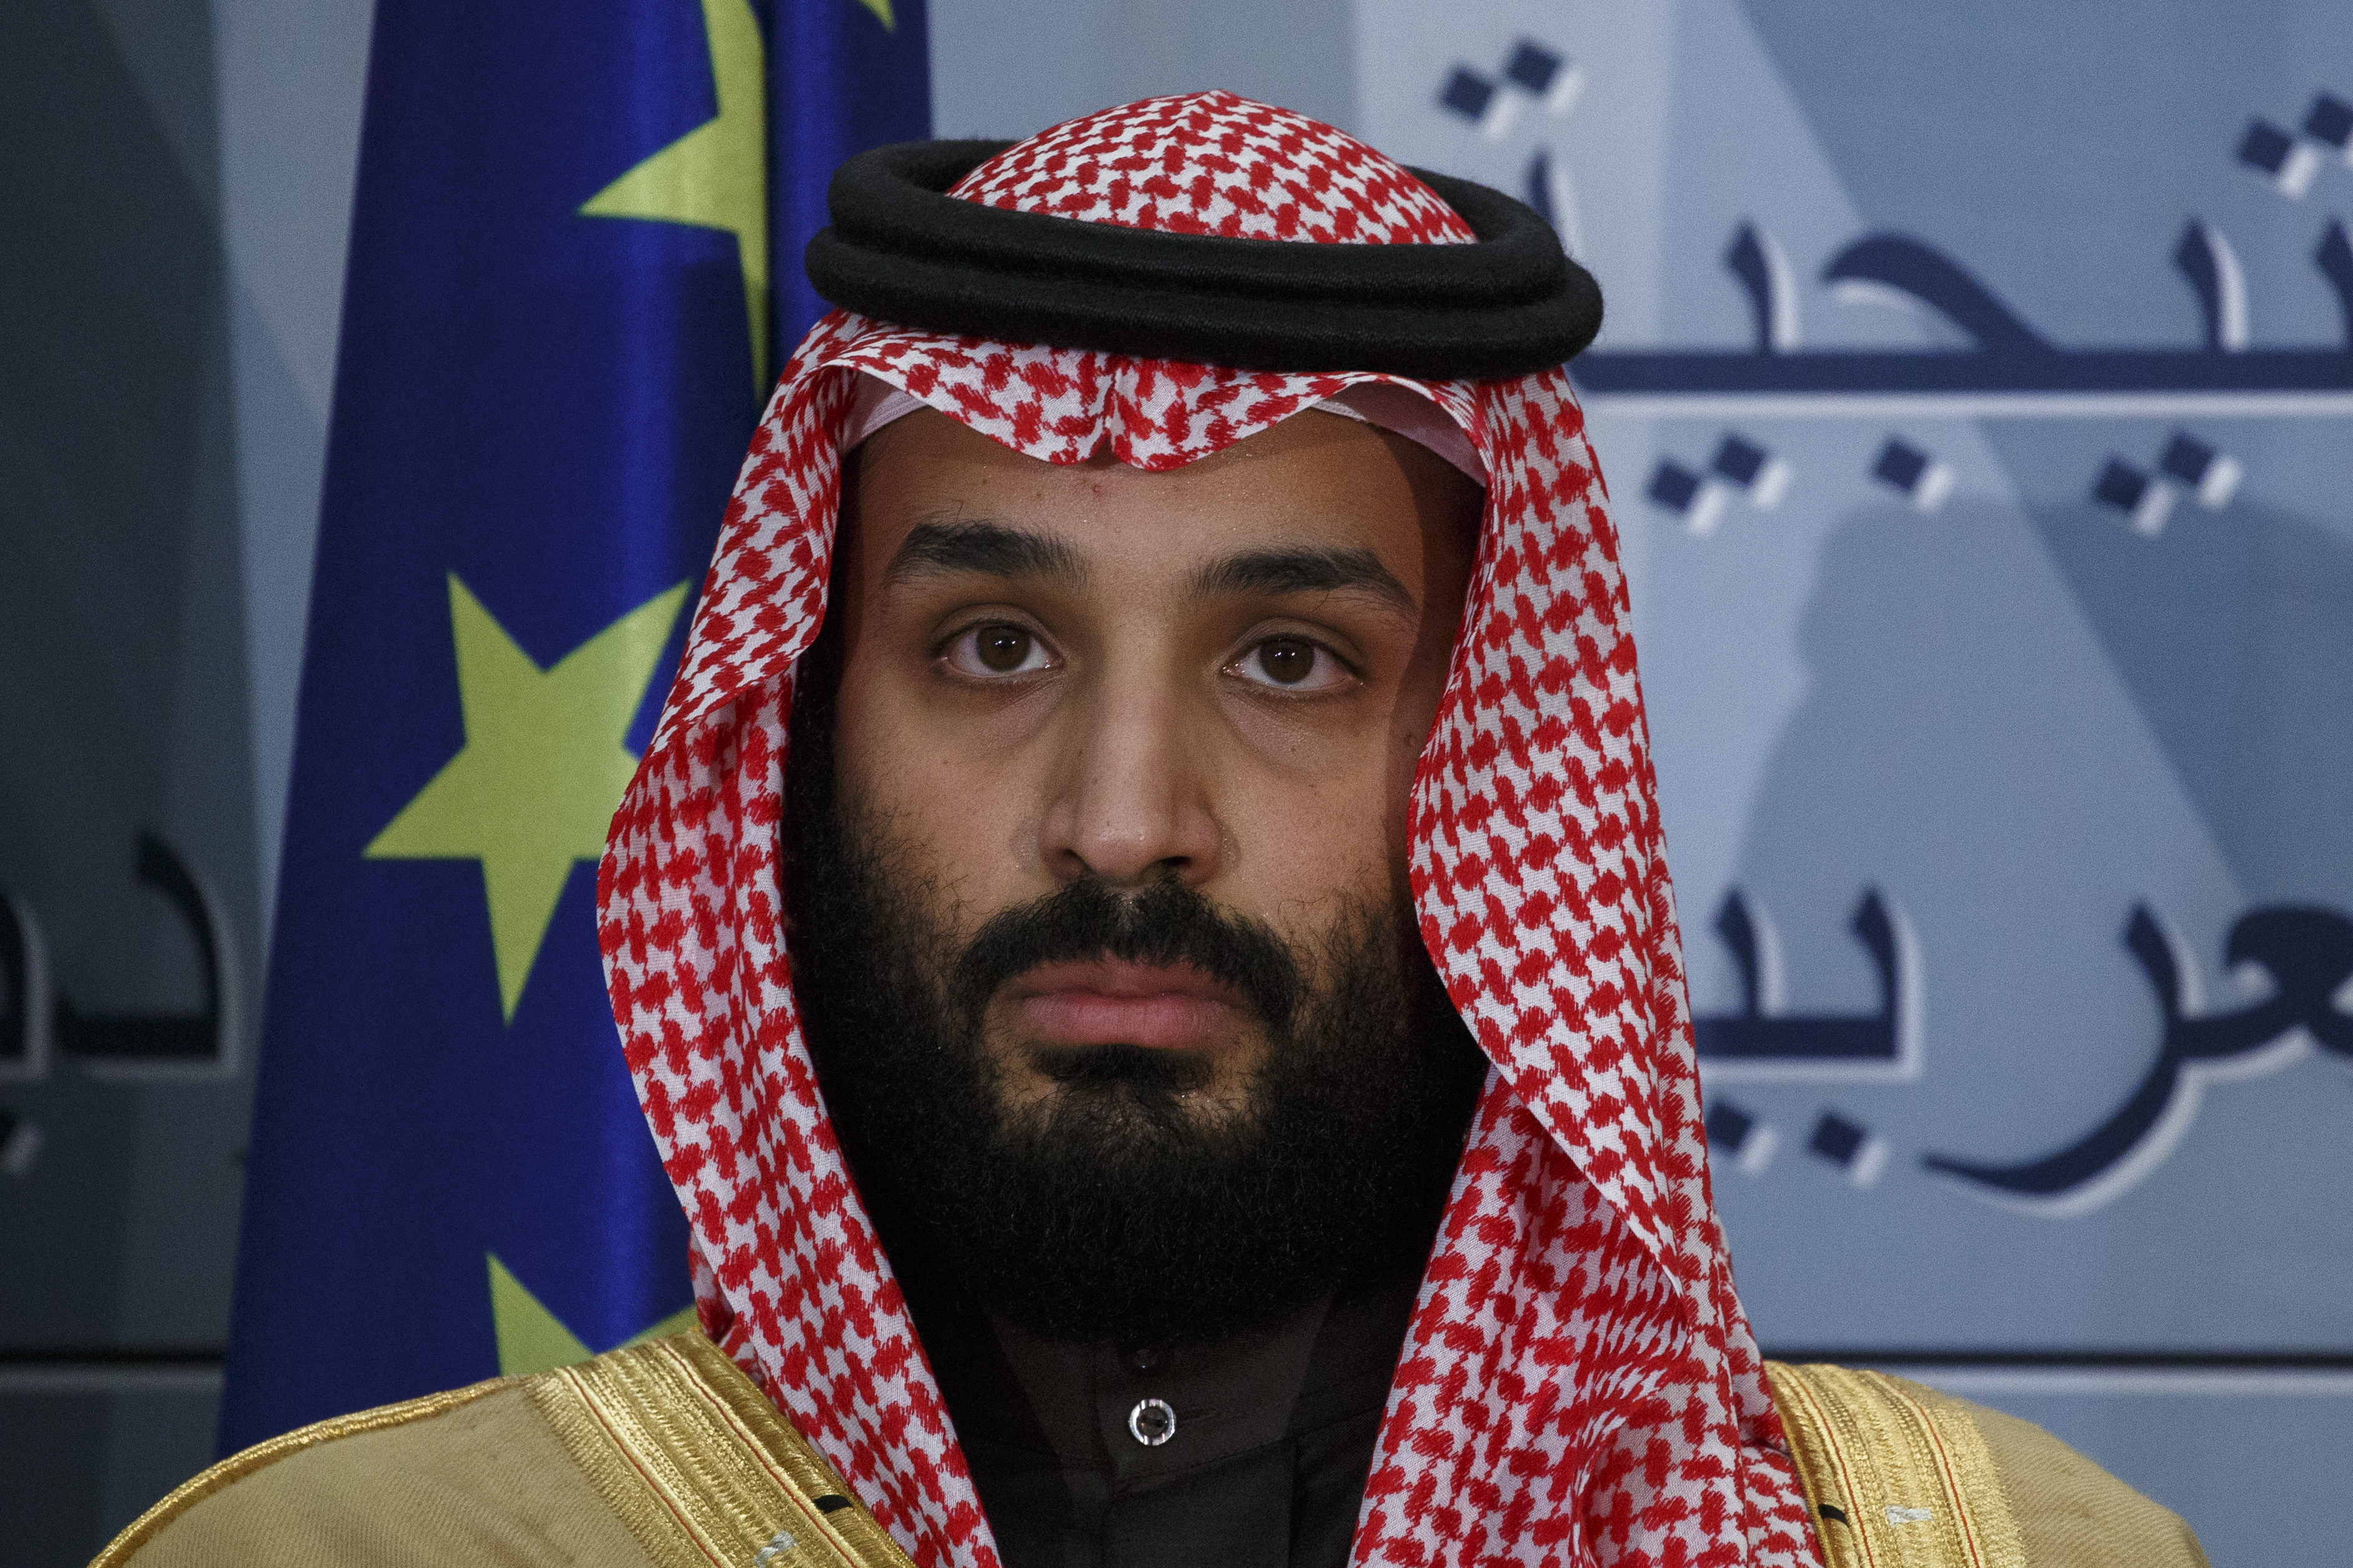 Saudi Arabia Crown Prince Mohammed bin Salman looks on during a ceremony at Moncloa Palace on April 12, 2018 in Madrid, Spain.